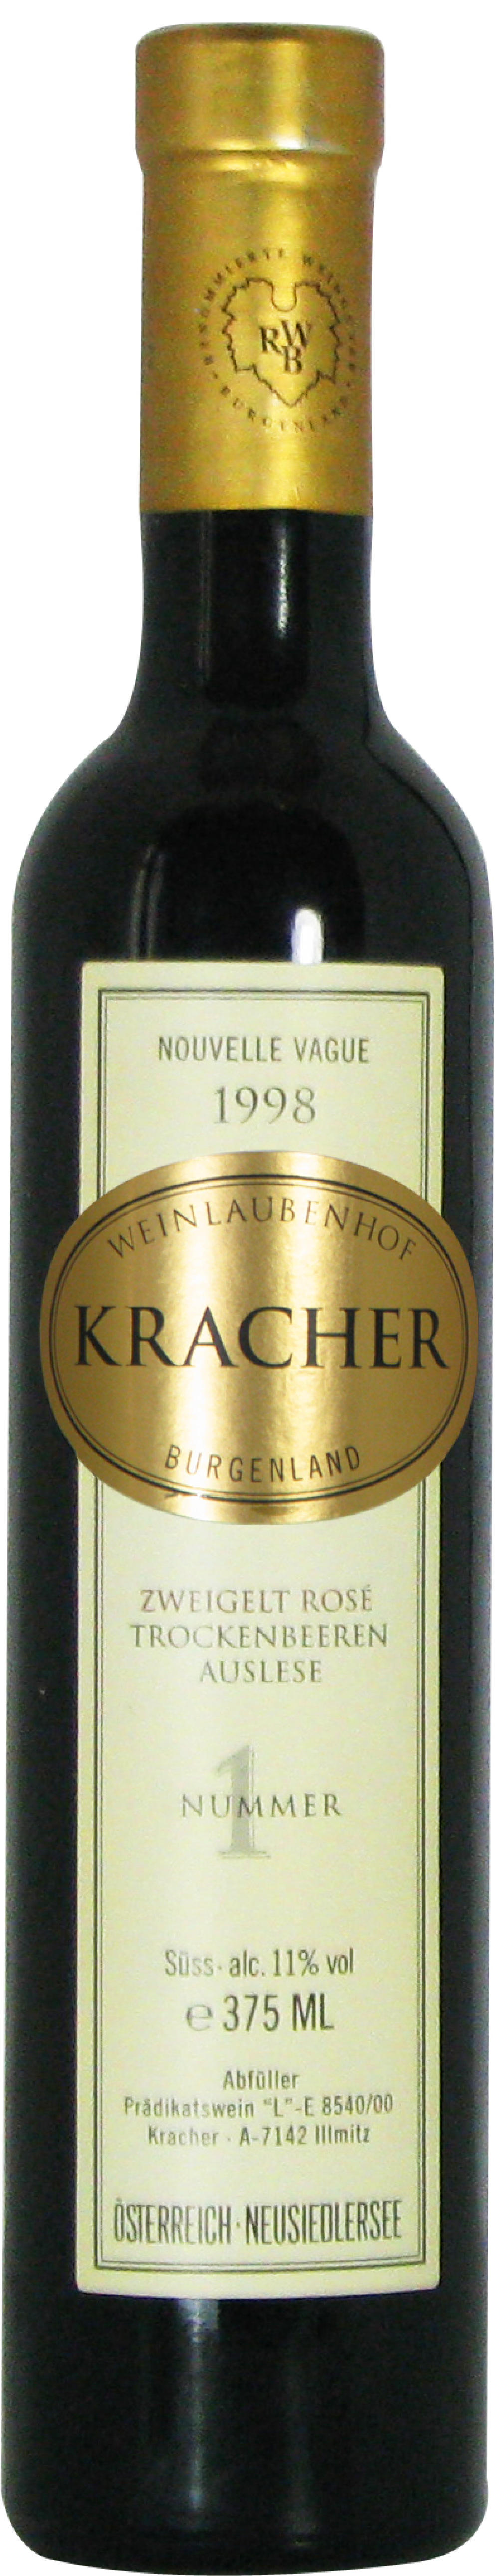 files/images/wines/Austria/kracher-neusiedlersee-burgenland/ONKH98_pic_big.png